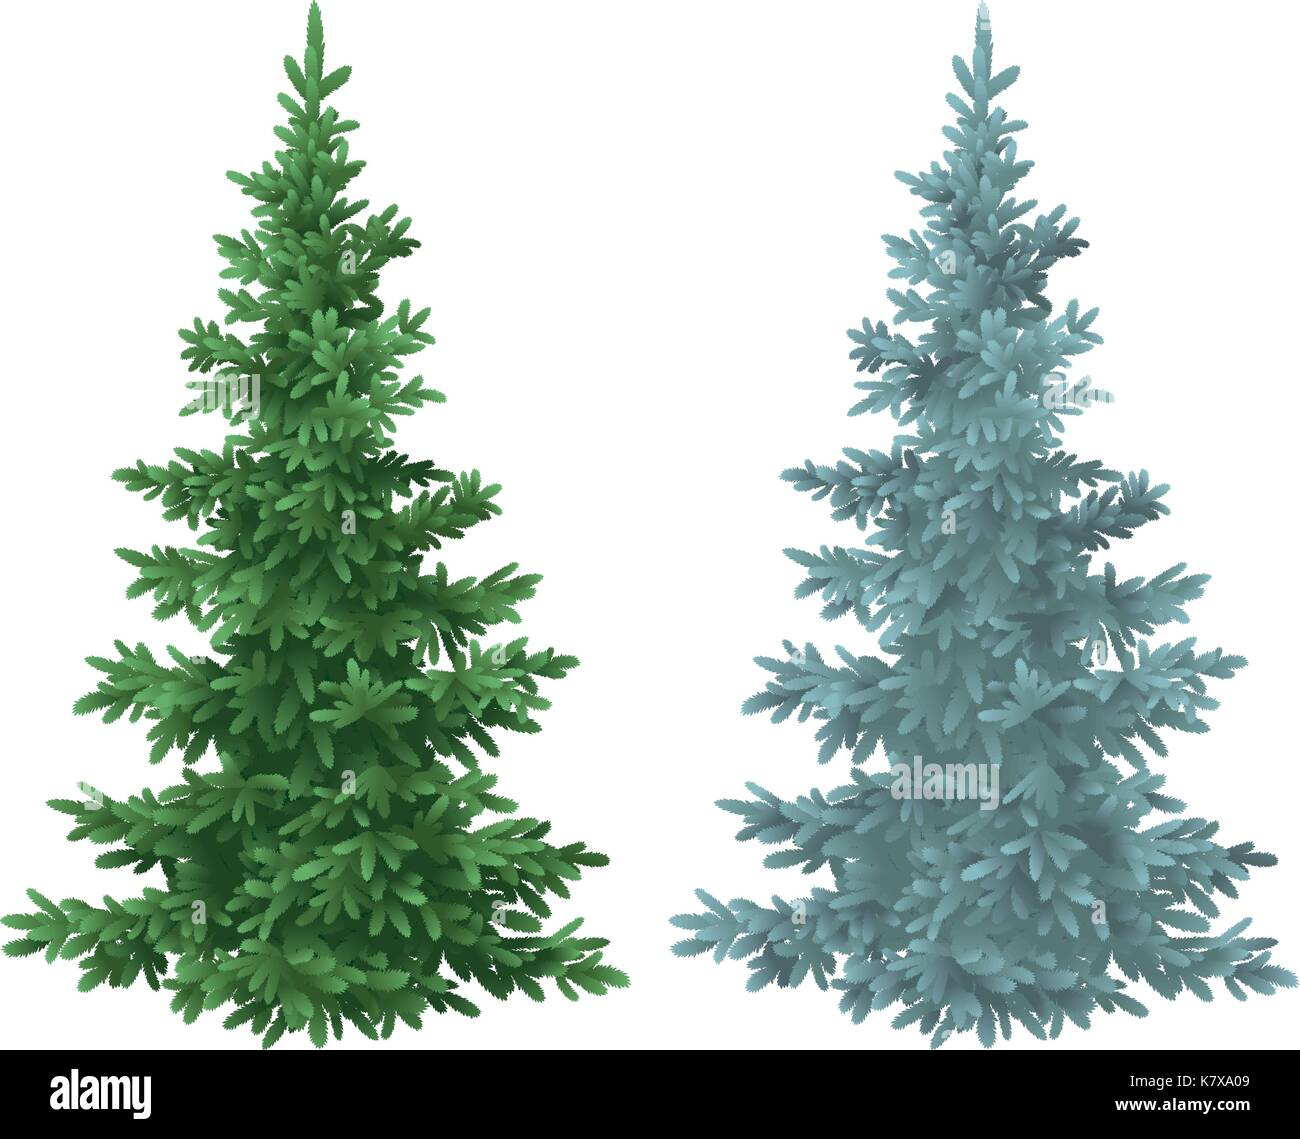 Christmas green and blue spruce fir trees - Stock Vector